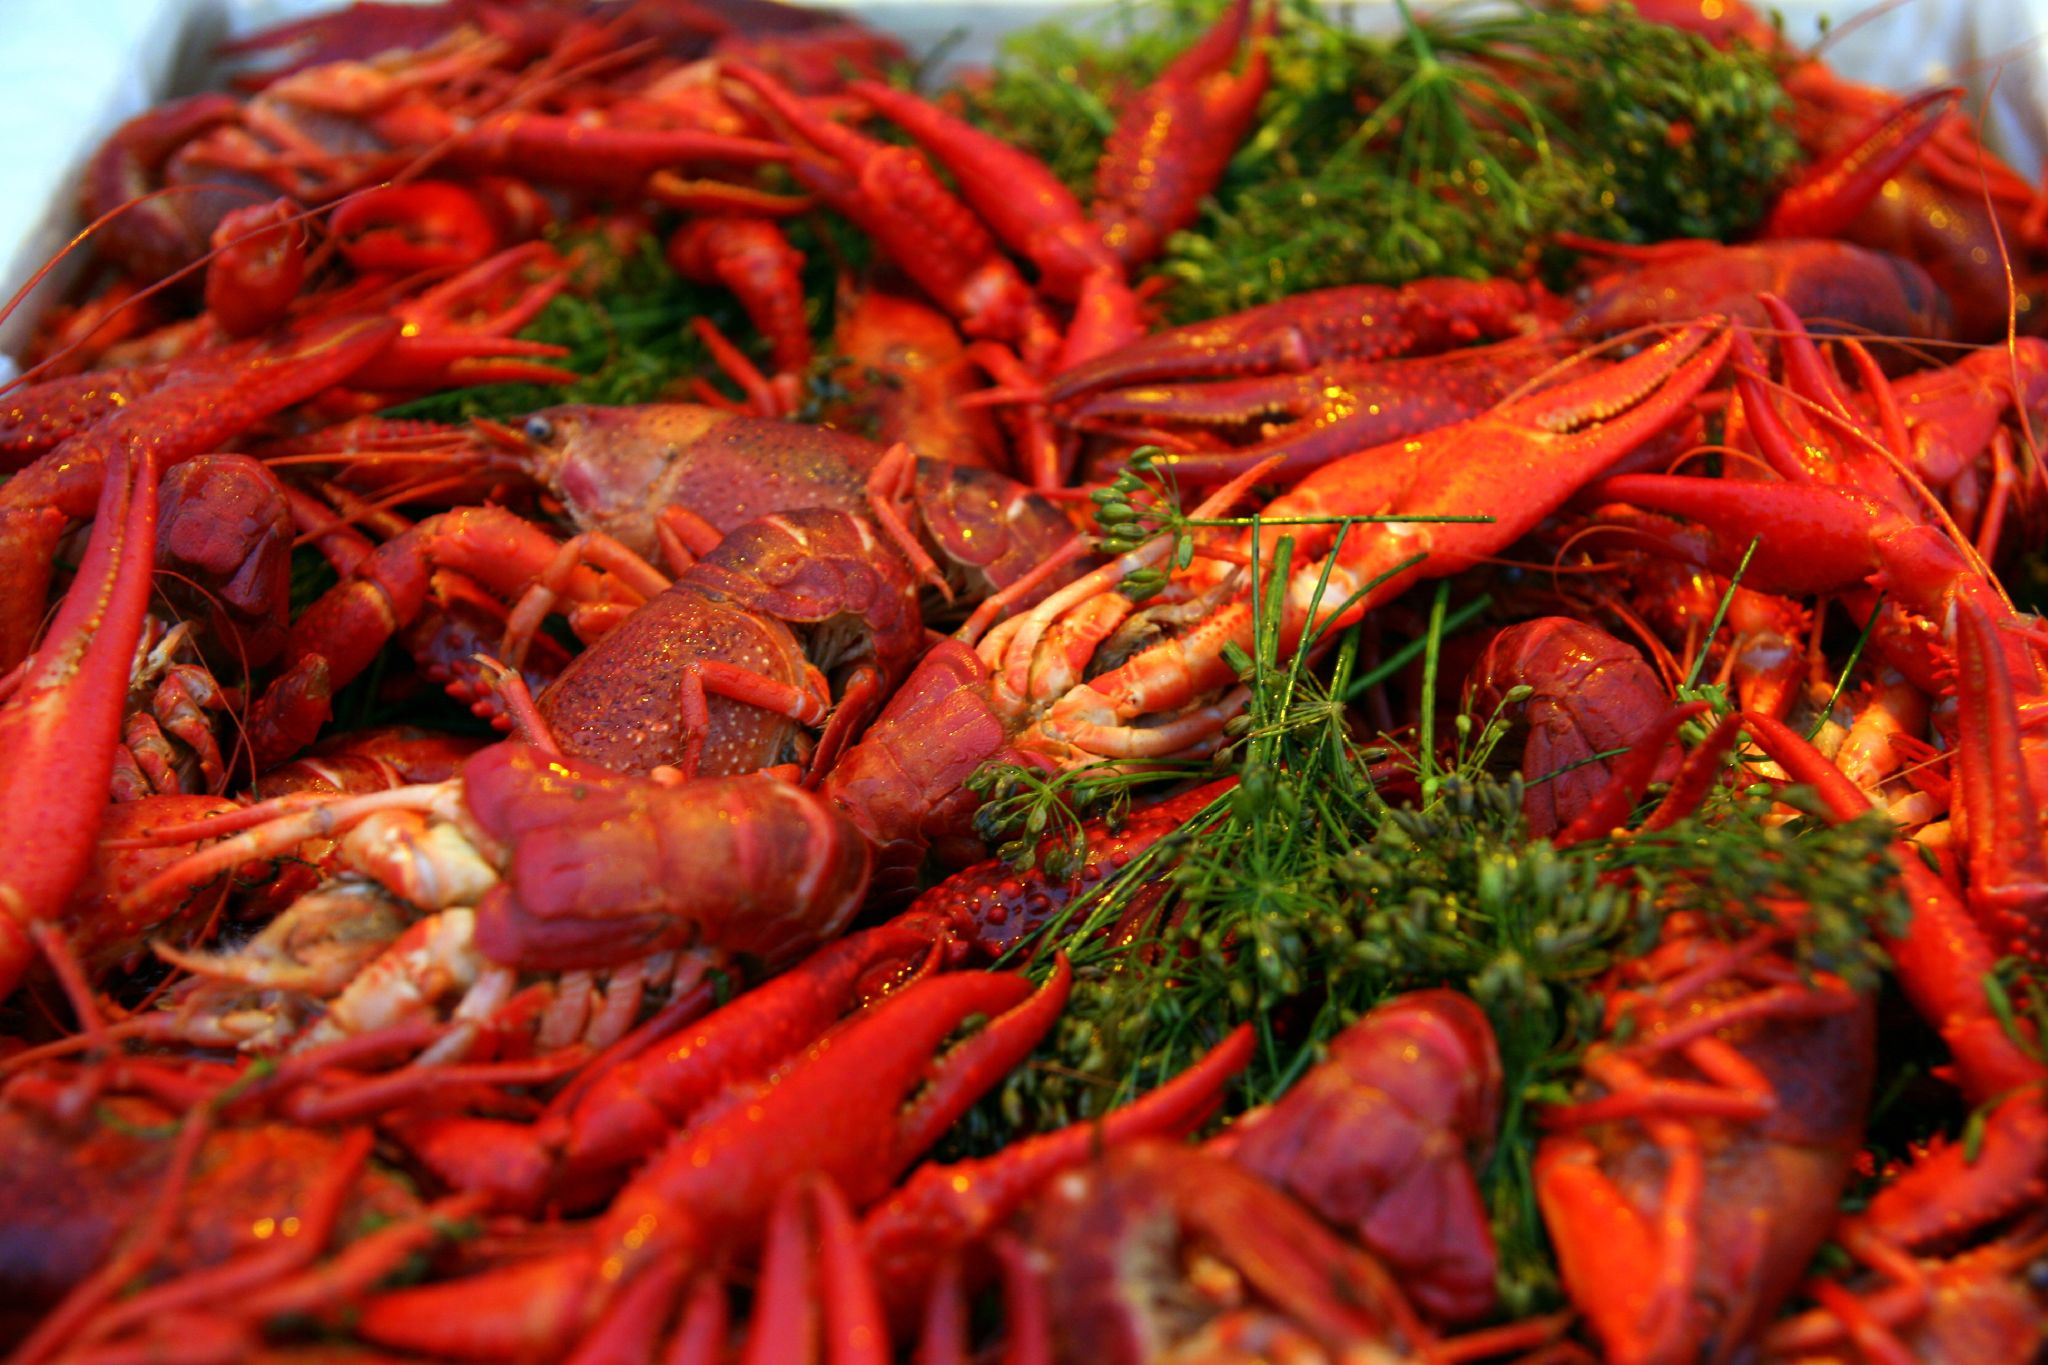 File:Cooked crayfish with dill.jpg - Wikipedia